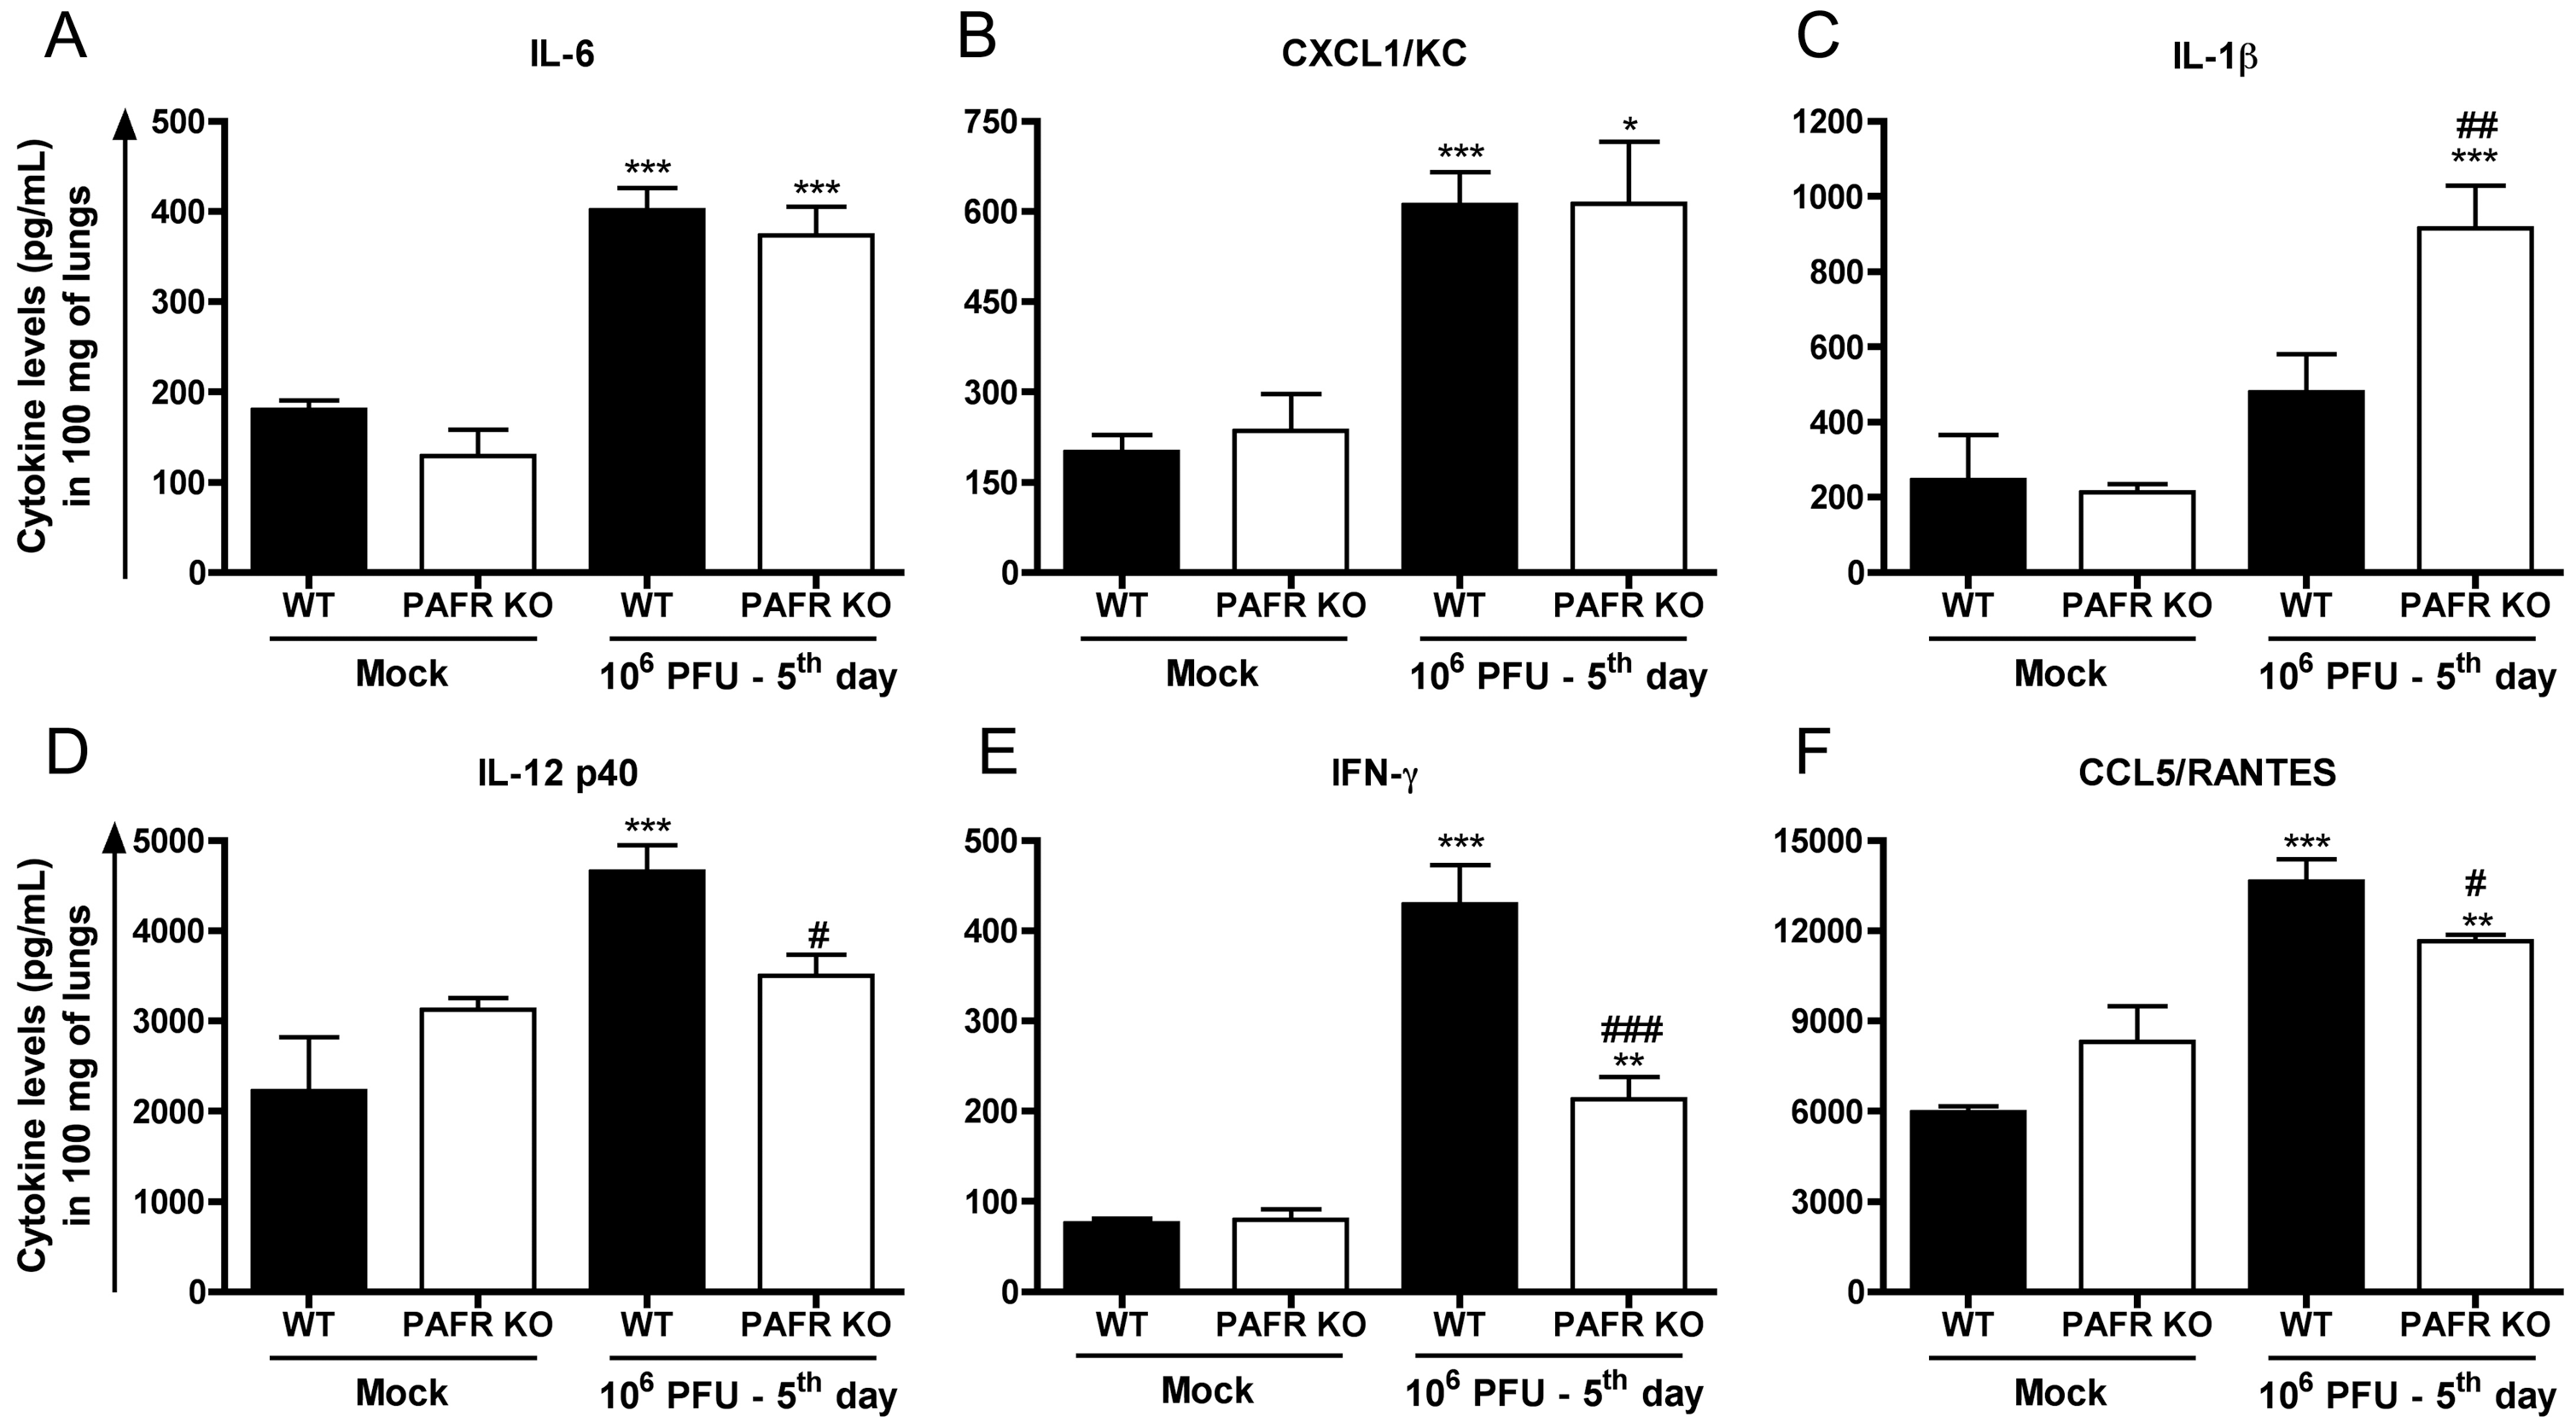 Cytokines and chemokines in lungs following Influenza A/WSN/33 H1N1 infection of WT and PAFR-deficient mice.